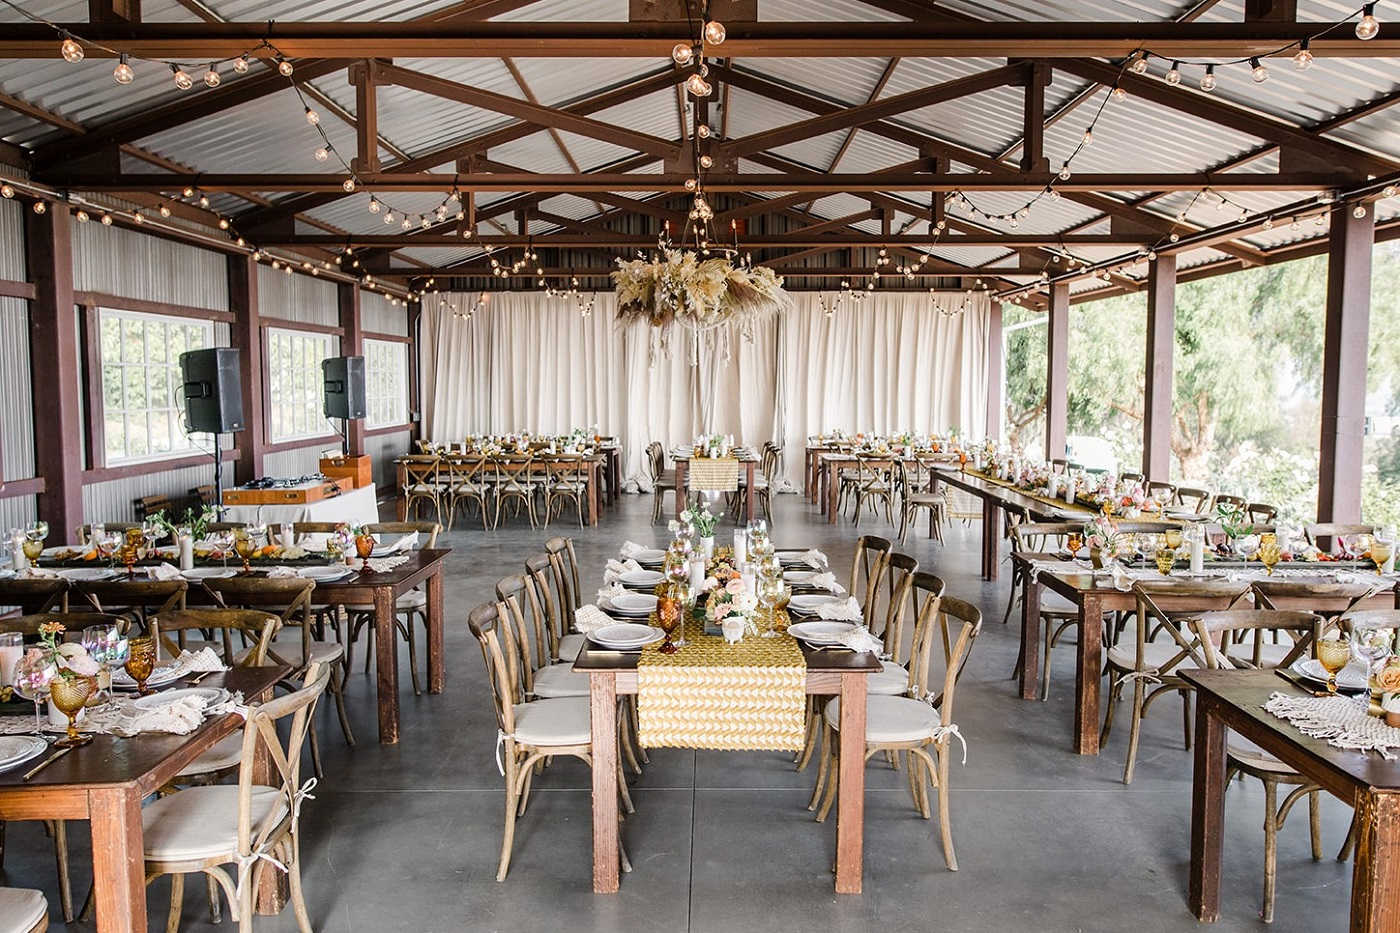 Wedding Rentals in Ventura County, Santa Barbara, and Los Angeles